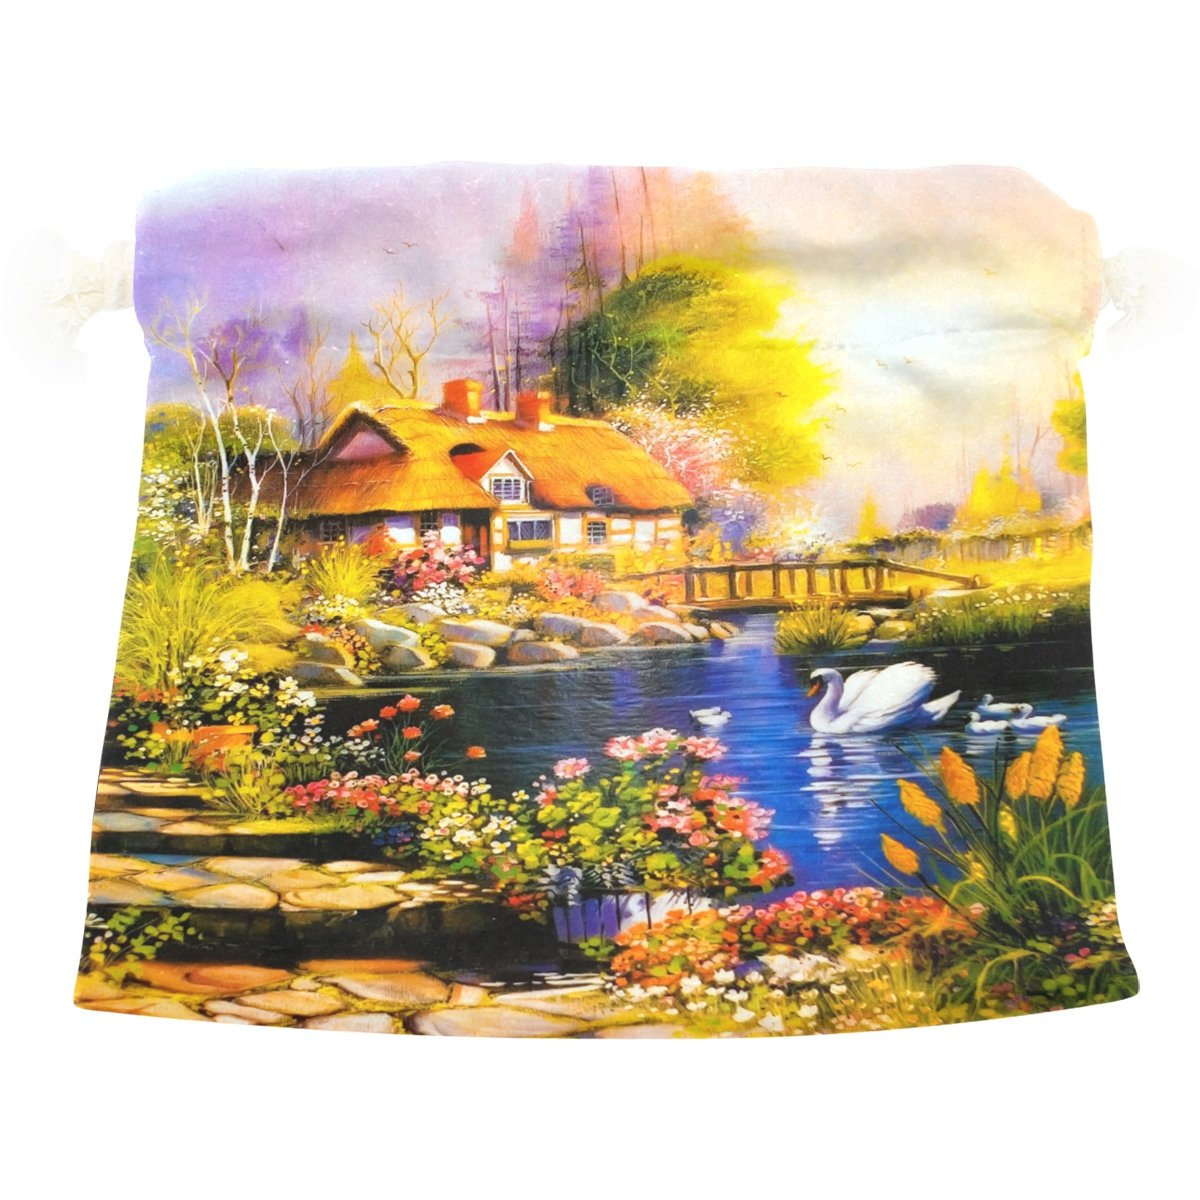 Dragon Sword Sunset Log Cabin Flowers Painting Gift Bags Jewelry Drawstring Pouches for Wedding Party, 12.6x17 Inch